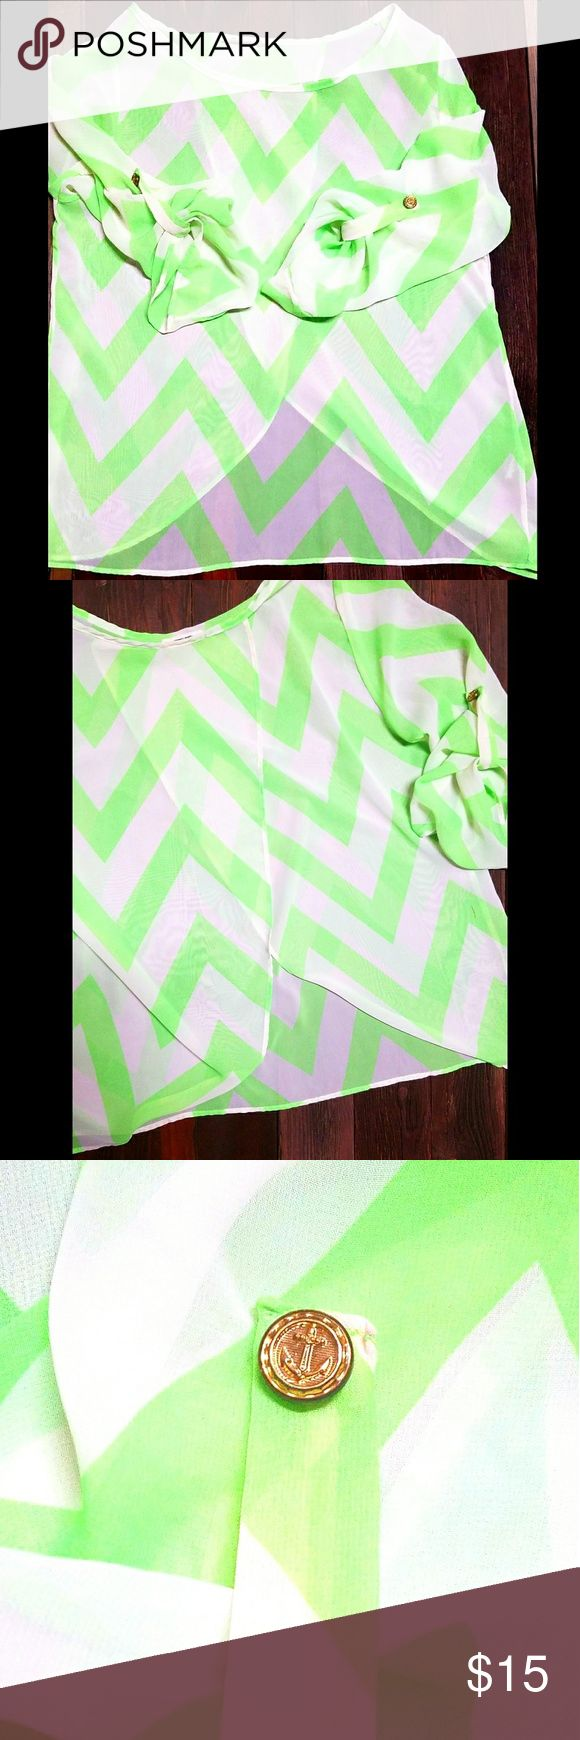 Rachel Kate Lime Green and White Chevron Top Rachel Kate Lime Green and White Sheer Chevron Top. Like new! Super cute top with gold anchor buttons on sleeves. And Criss cross like opening in back. Rachel Kate Tops Blouses